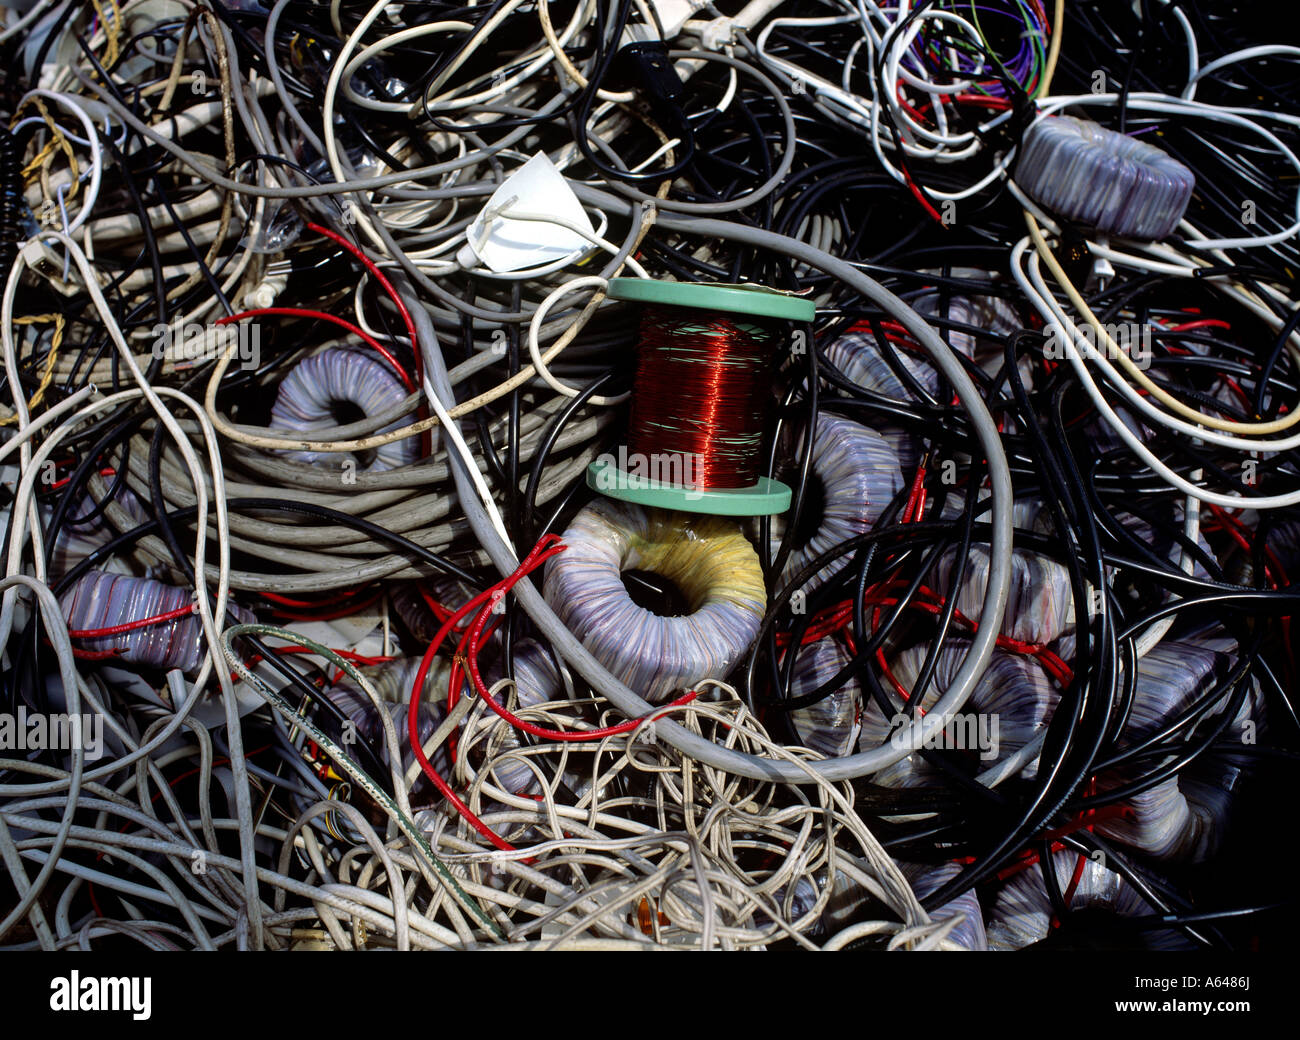 copper wires and telecom computer cables collected for recycling ...